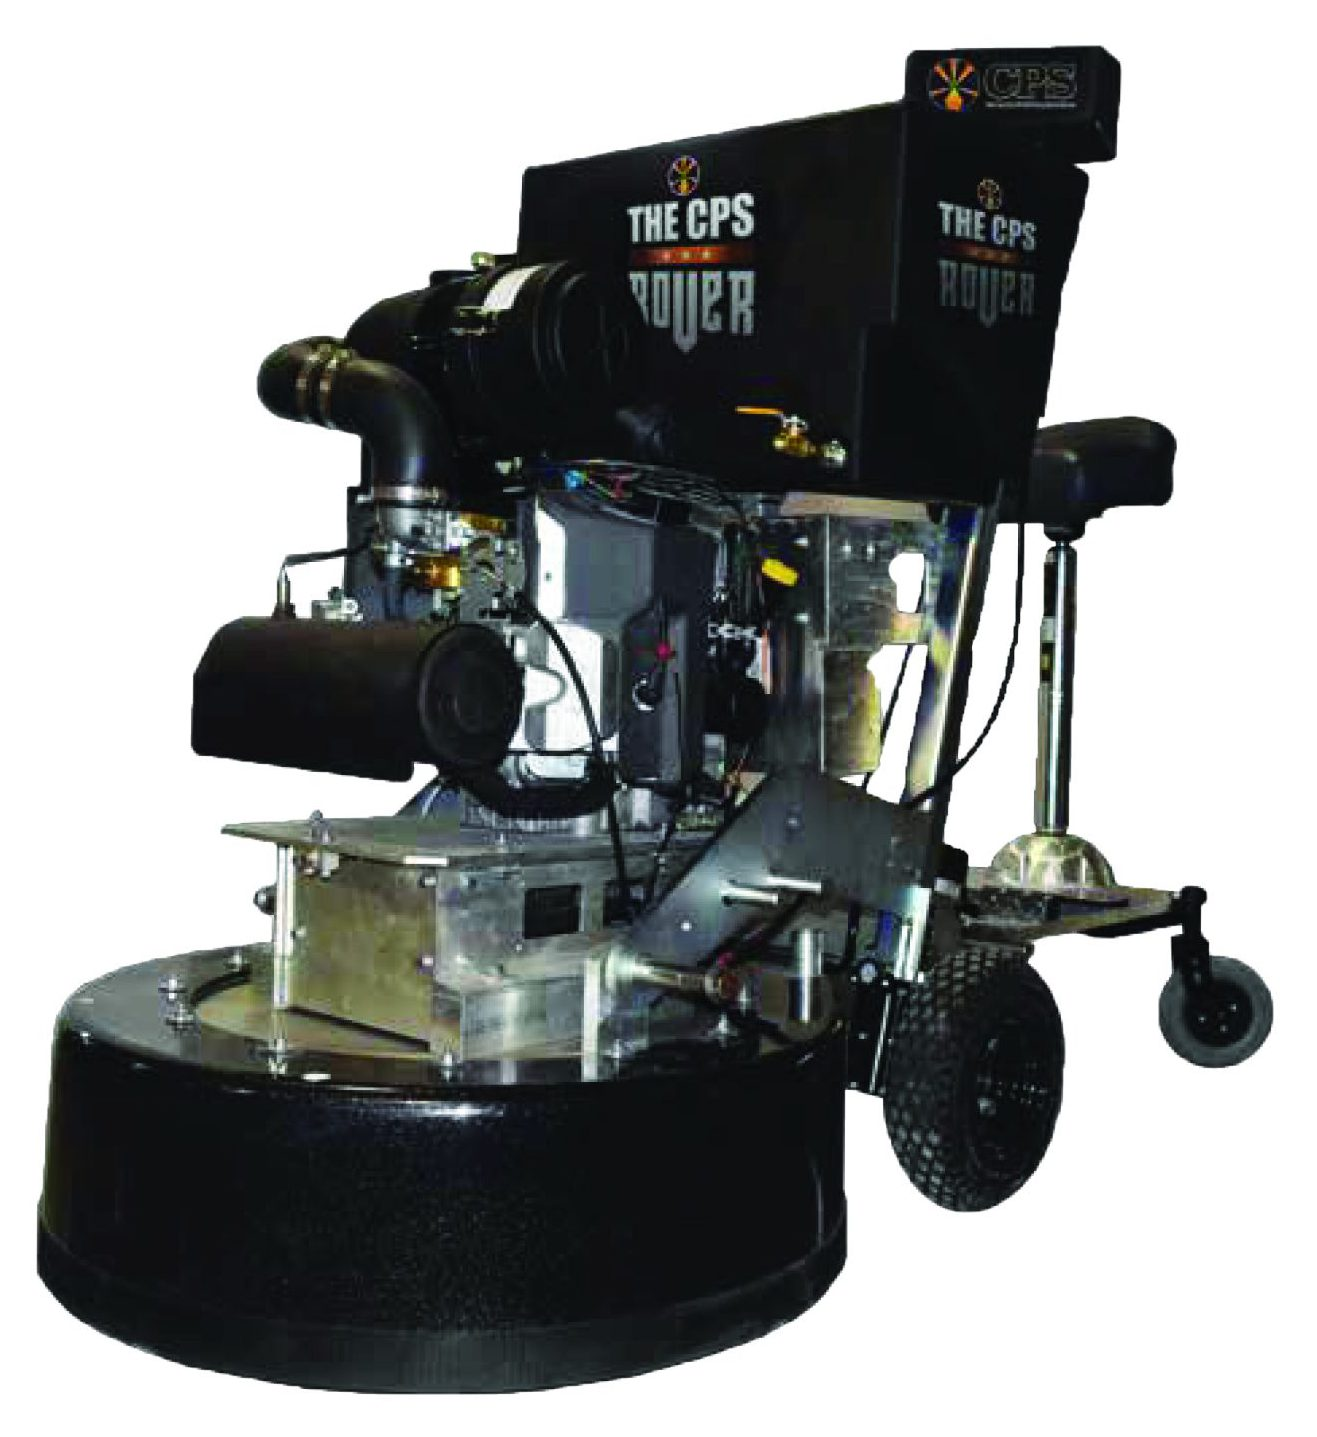 The Brand NEW CPS Rover Floor Grinder